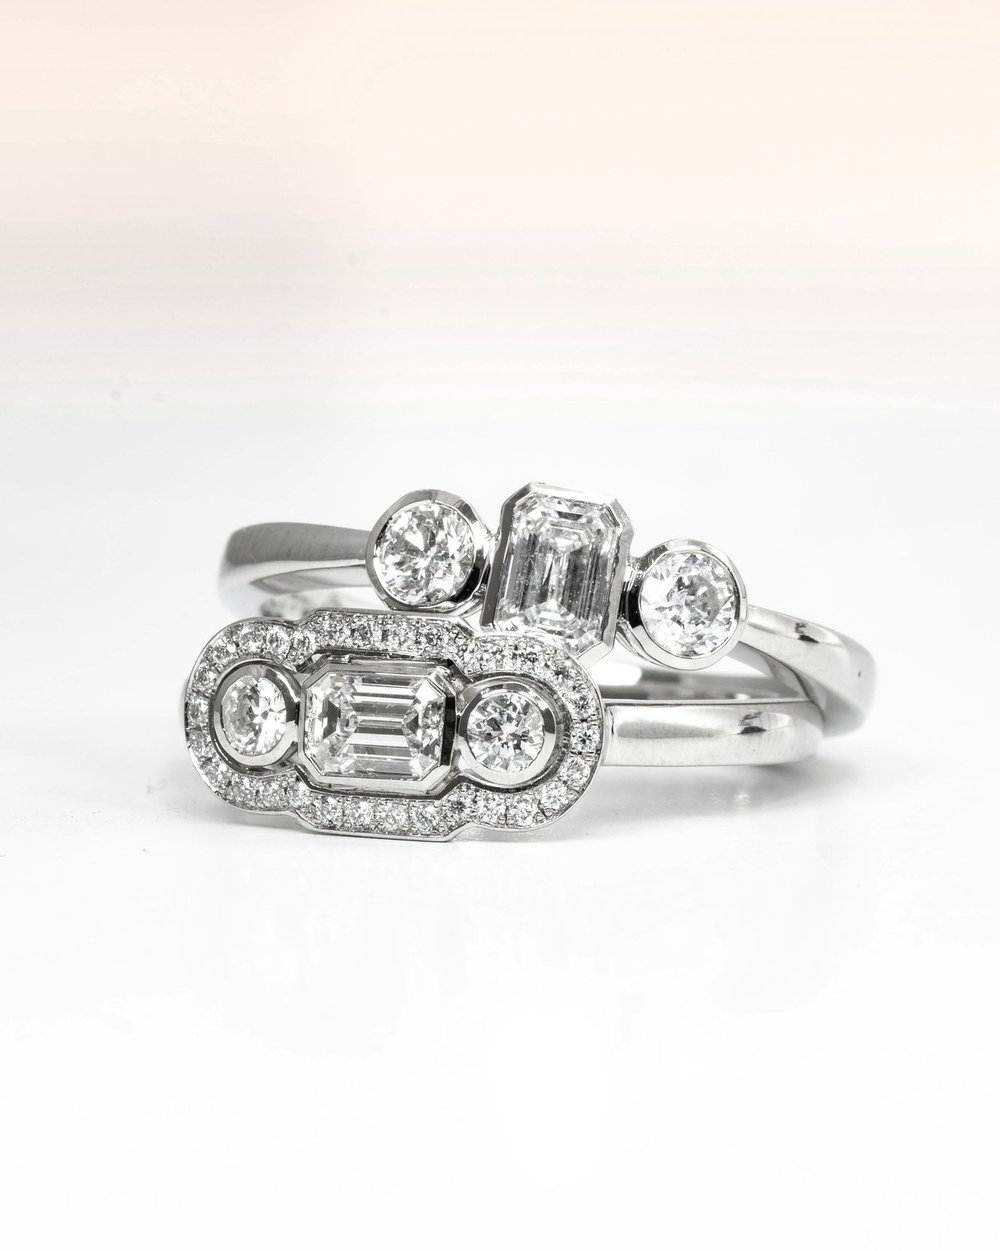 Two platinum mounted emerald cut and brilliant cut diamond set rings. Made in Chichester, England.